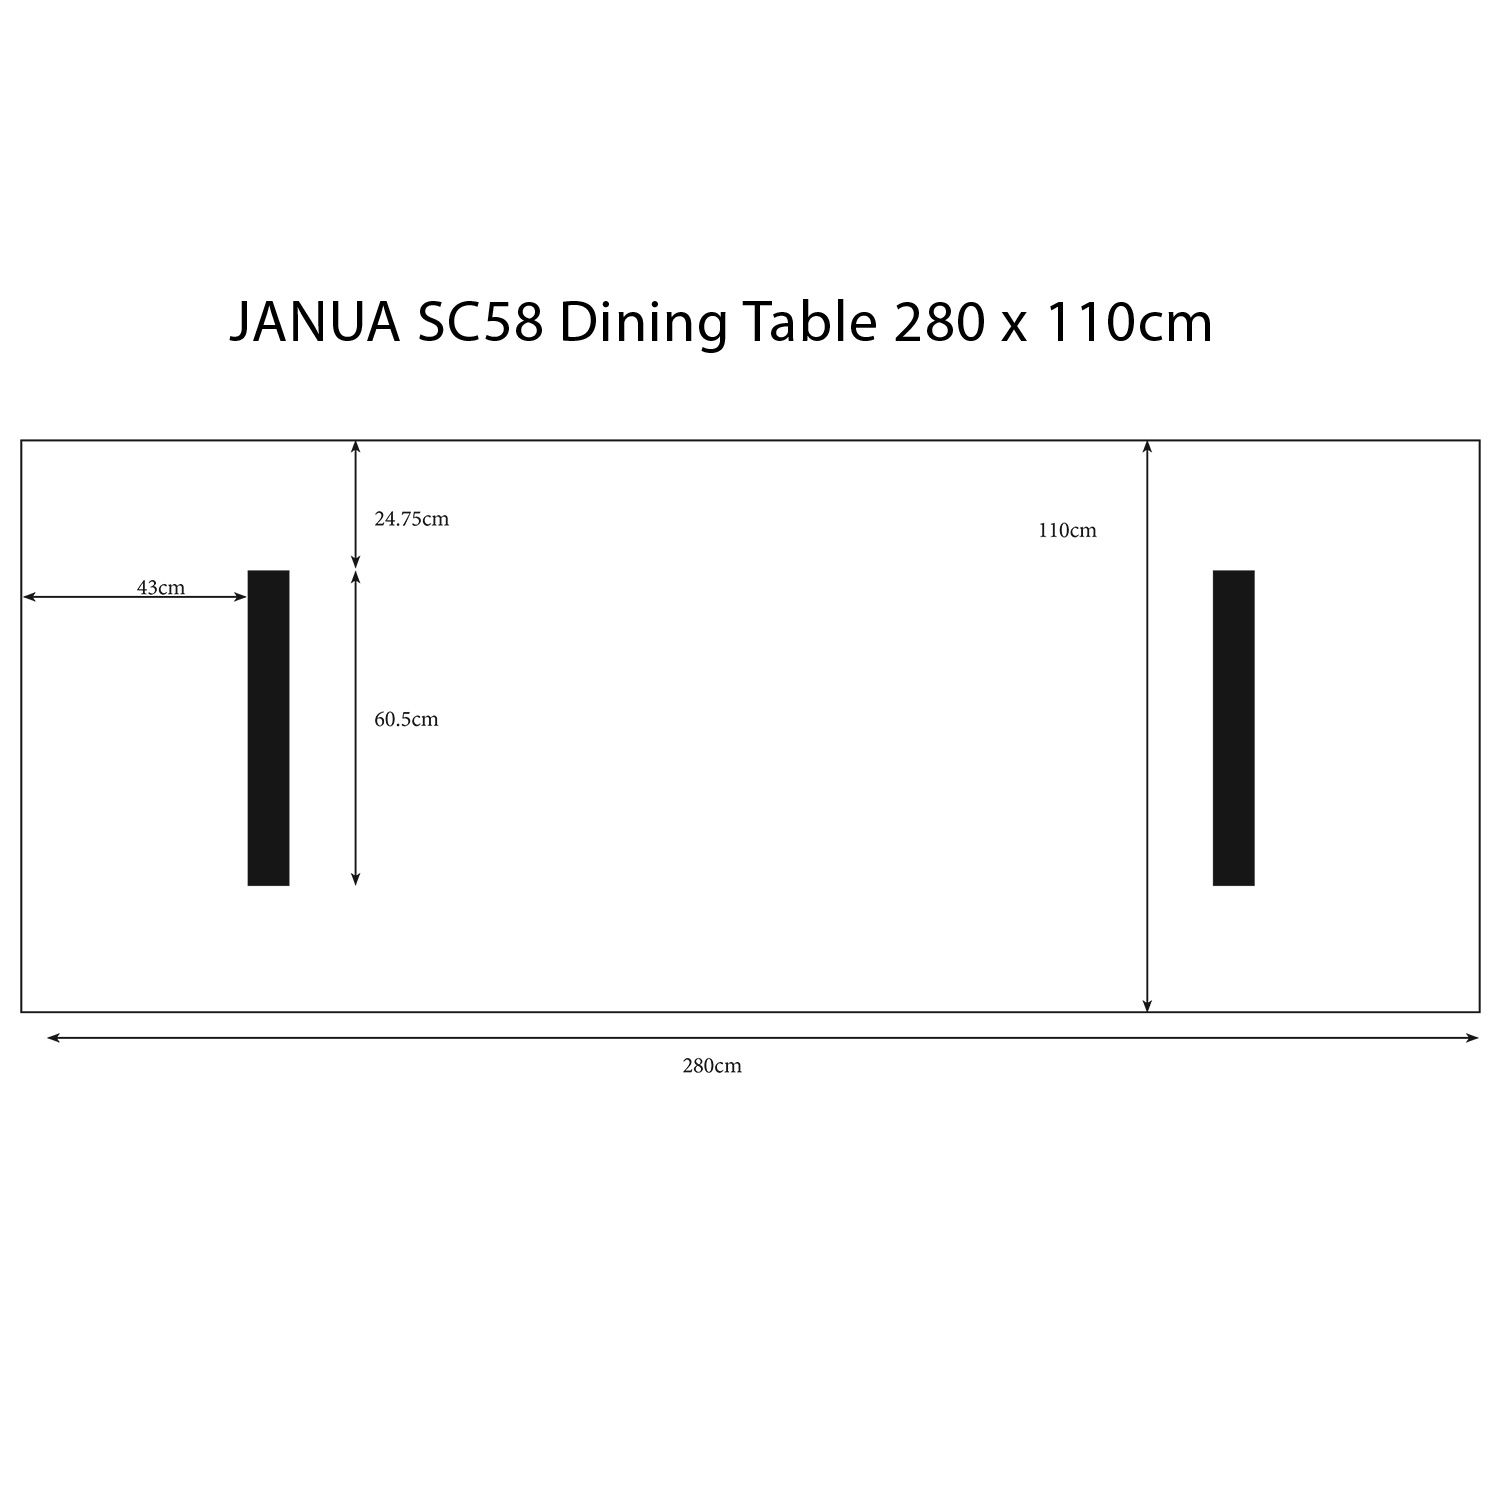 sc58 2 8m table pictorial dimensions